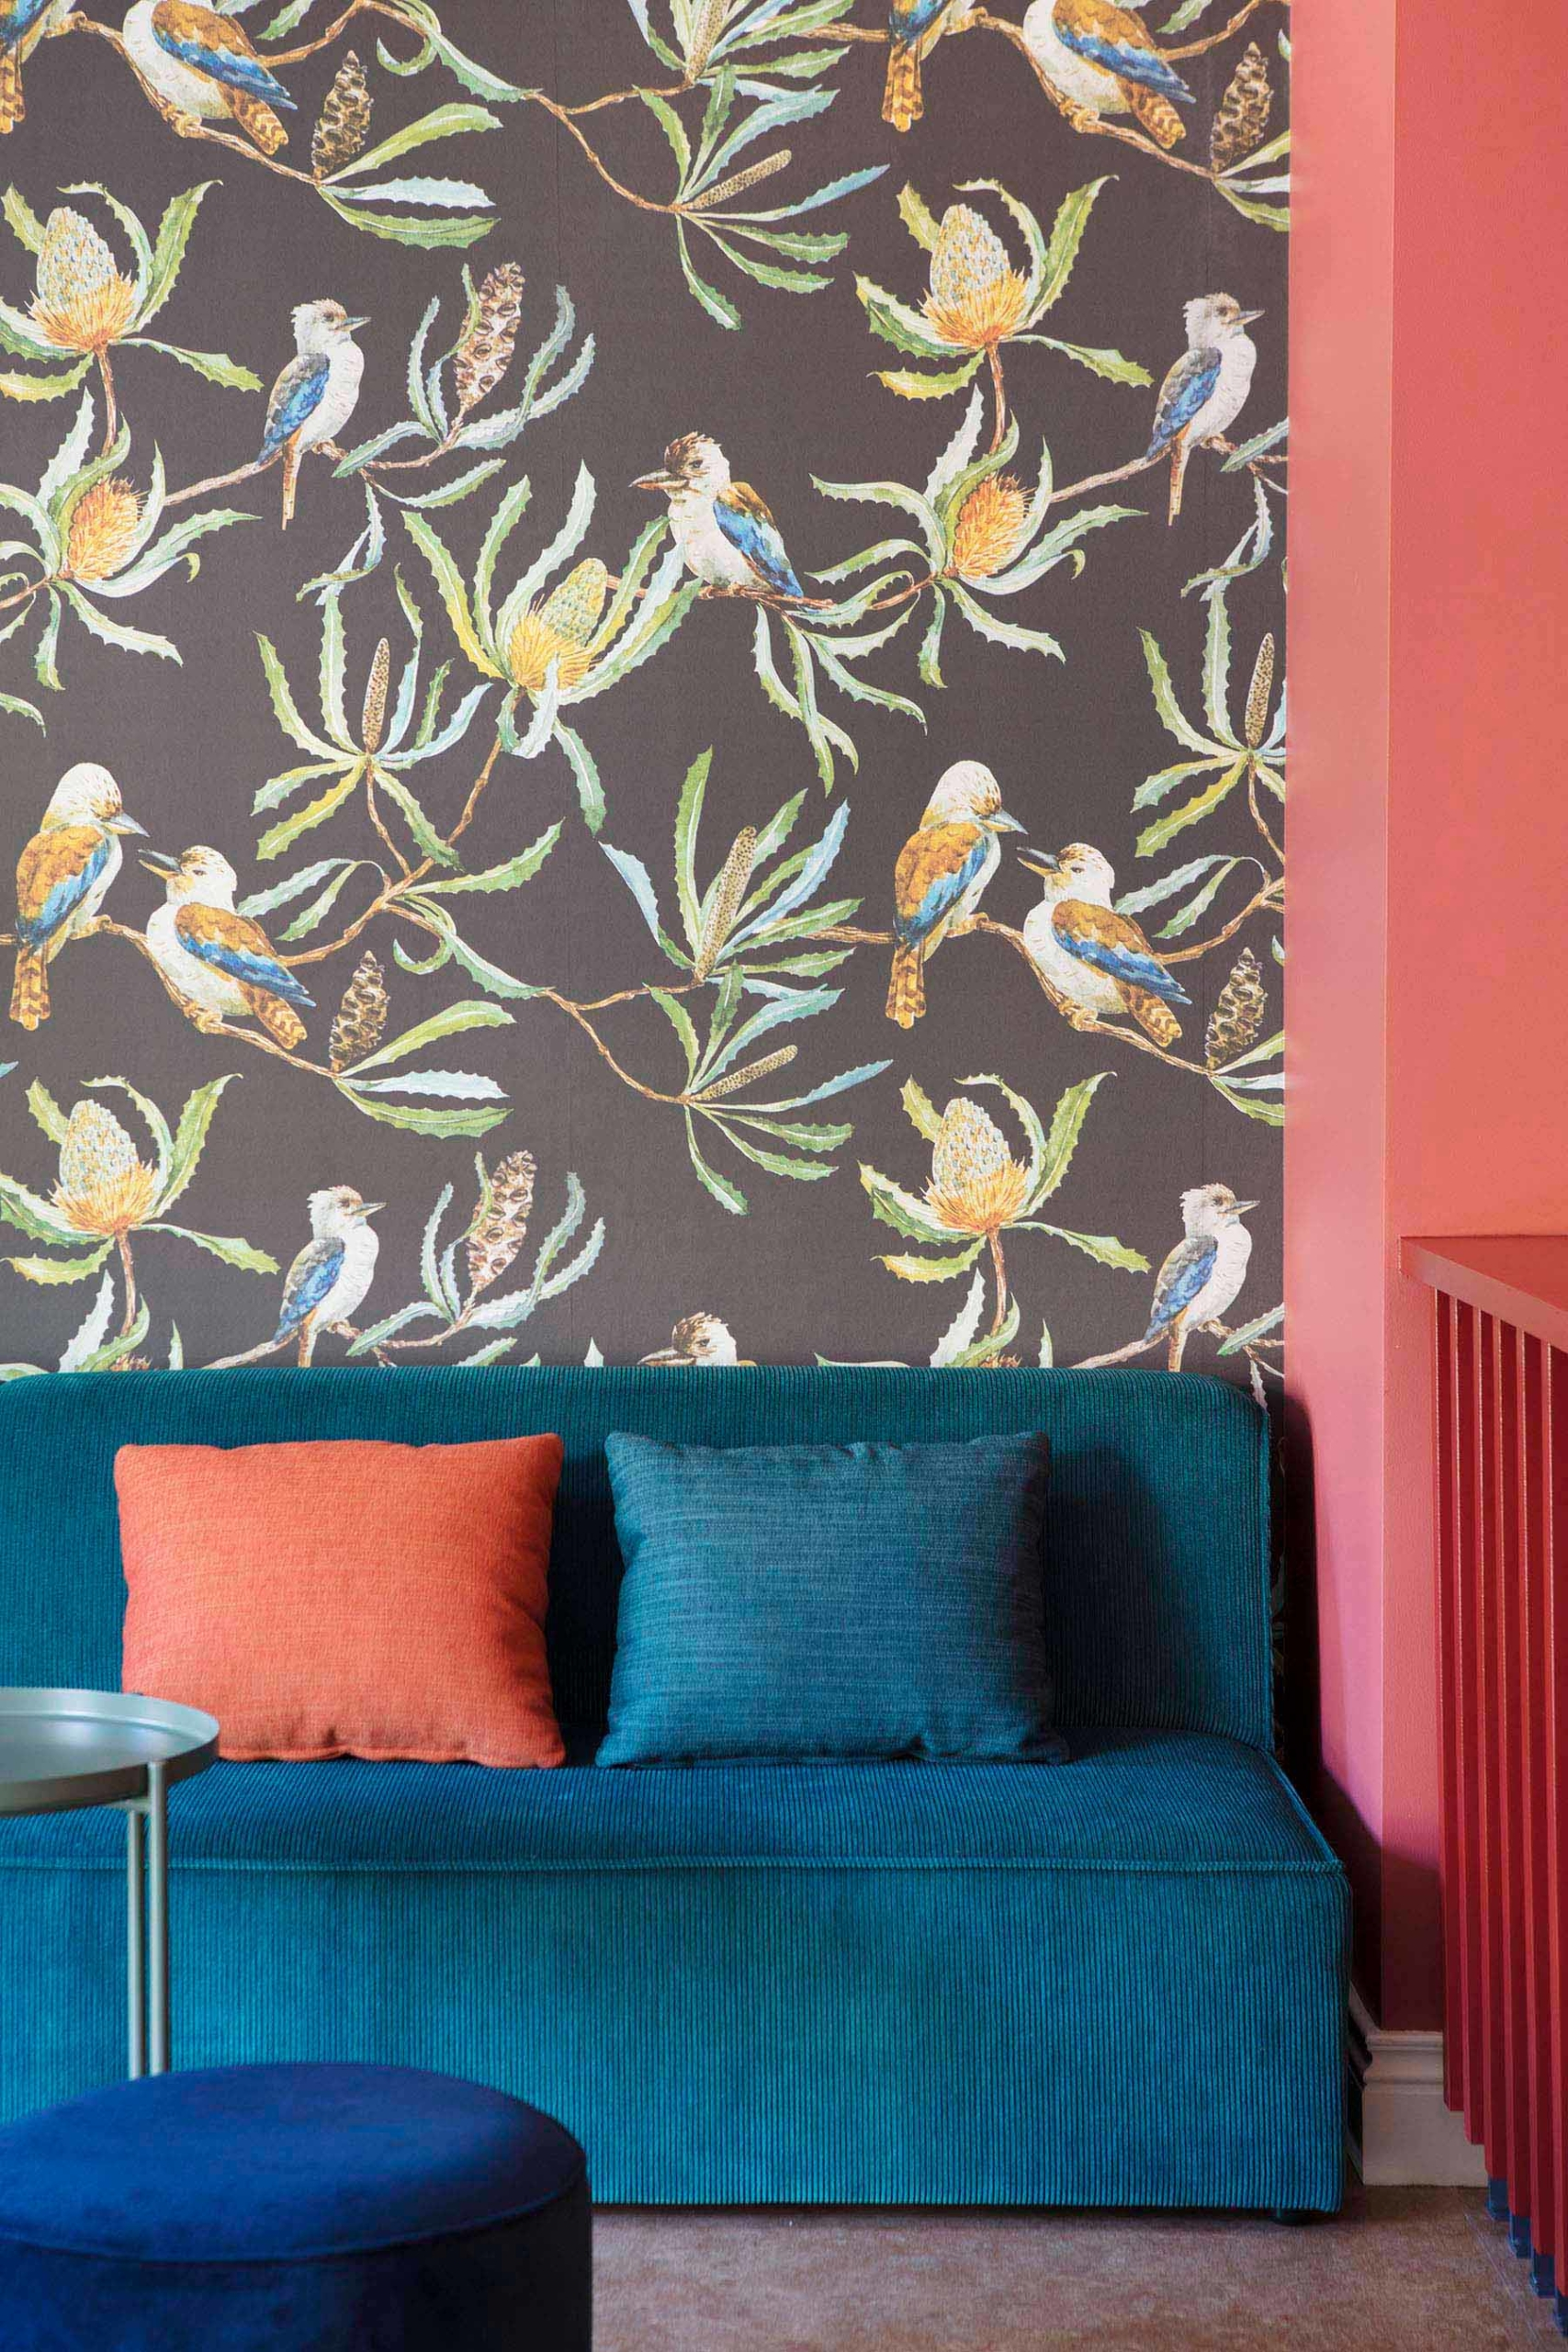 blue couch in front of coloured wallpaper depicting banksias and kookaburras